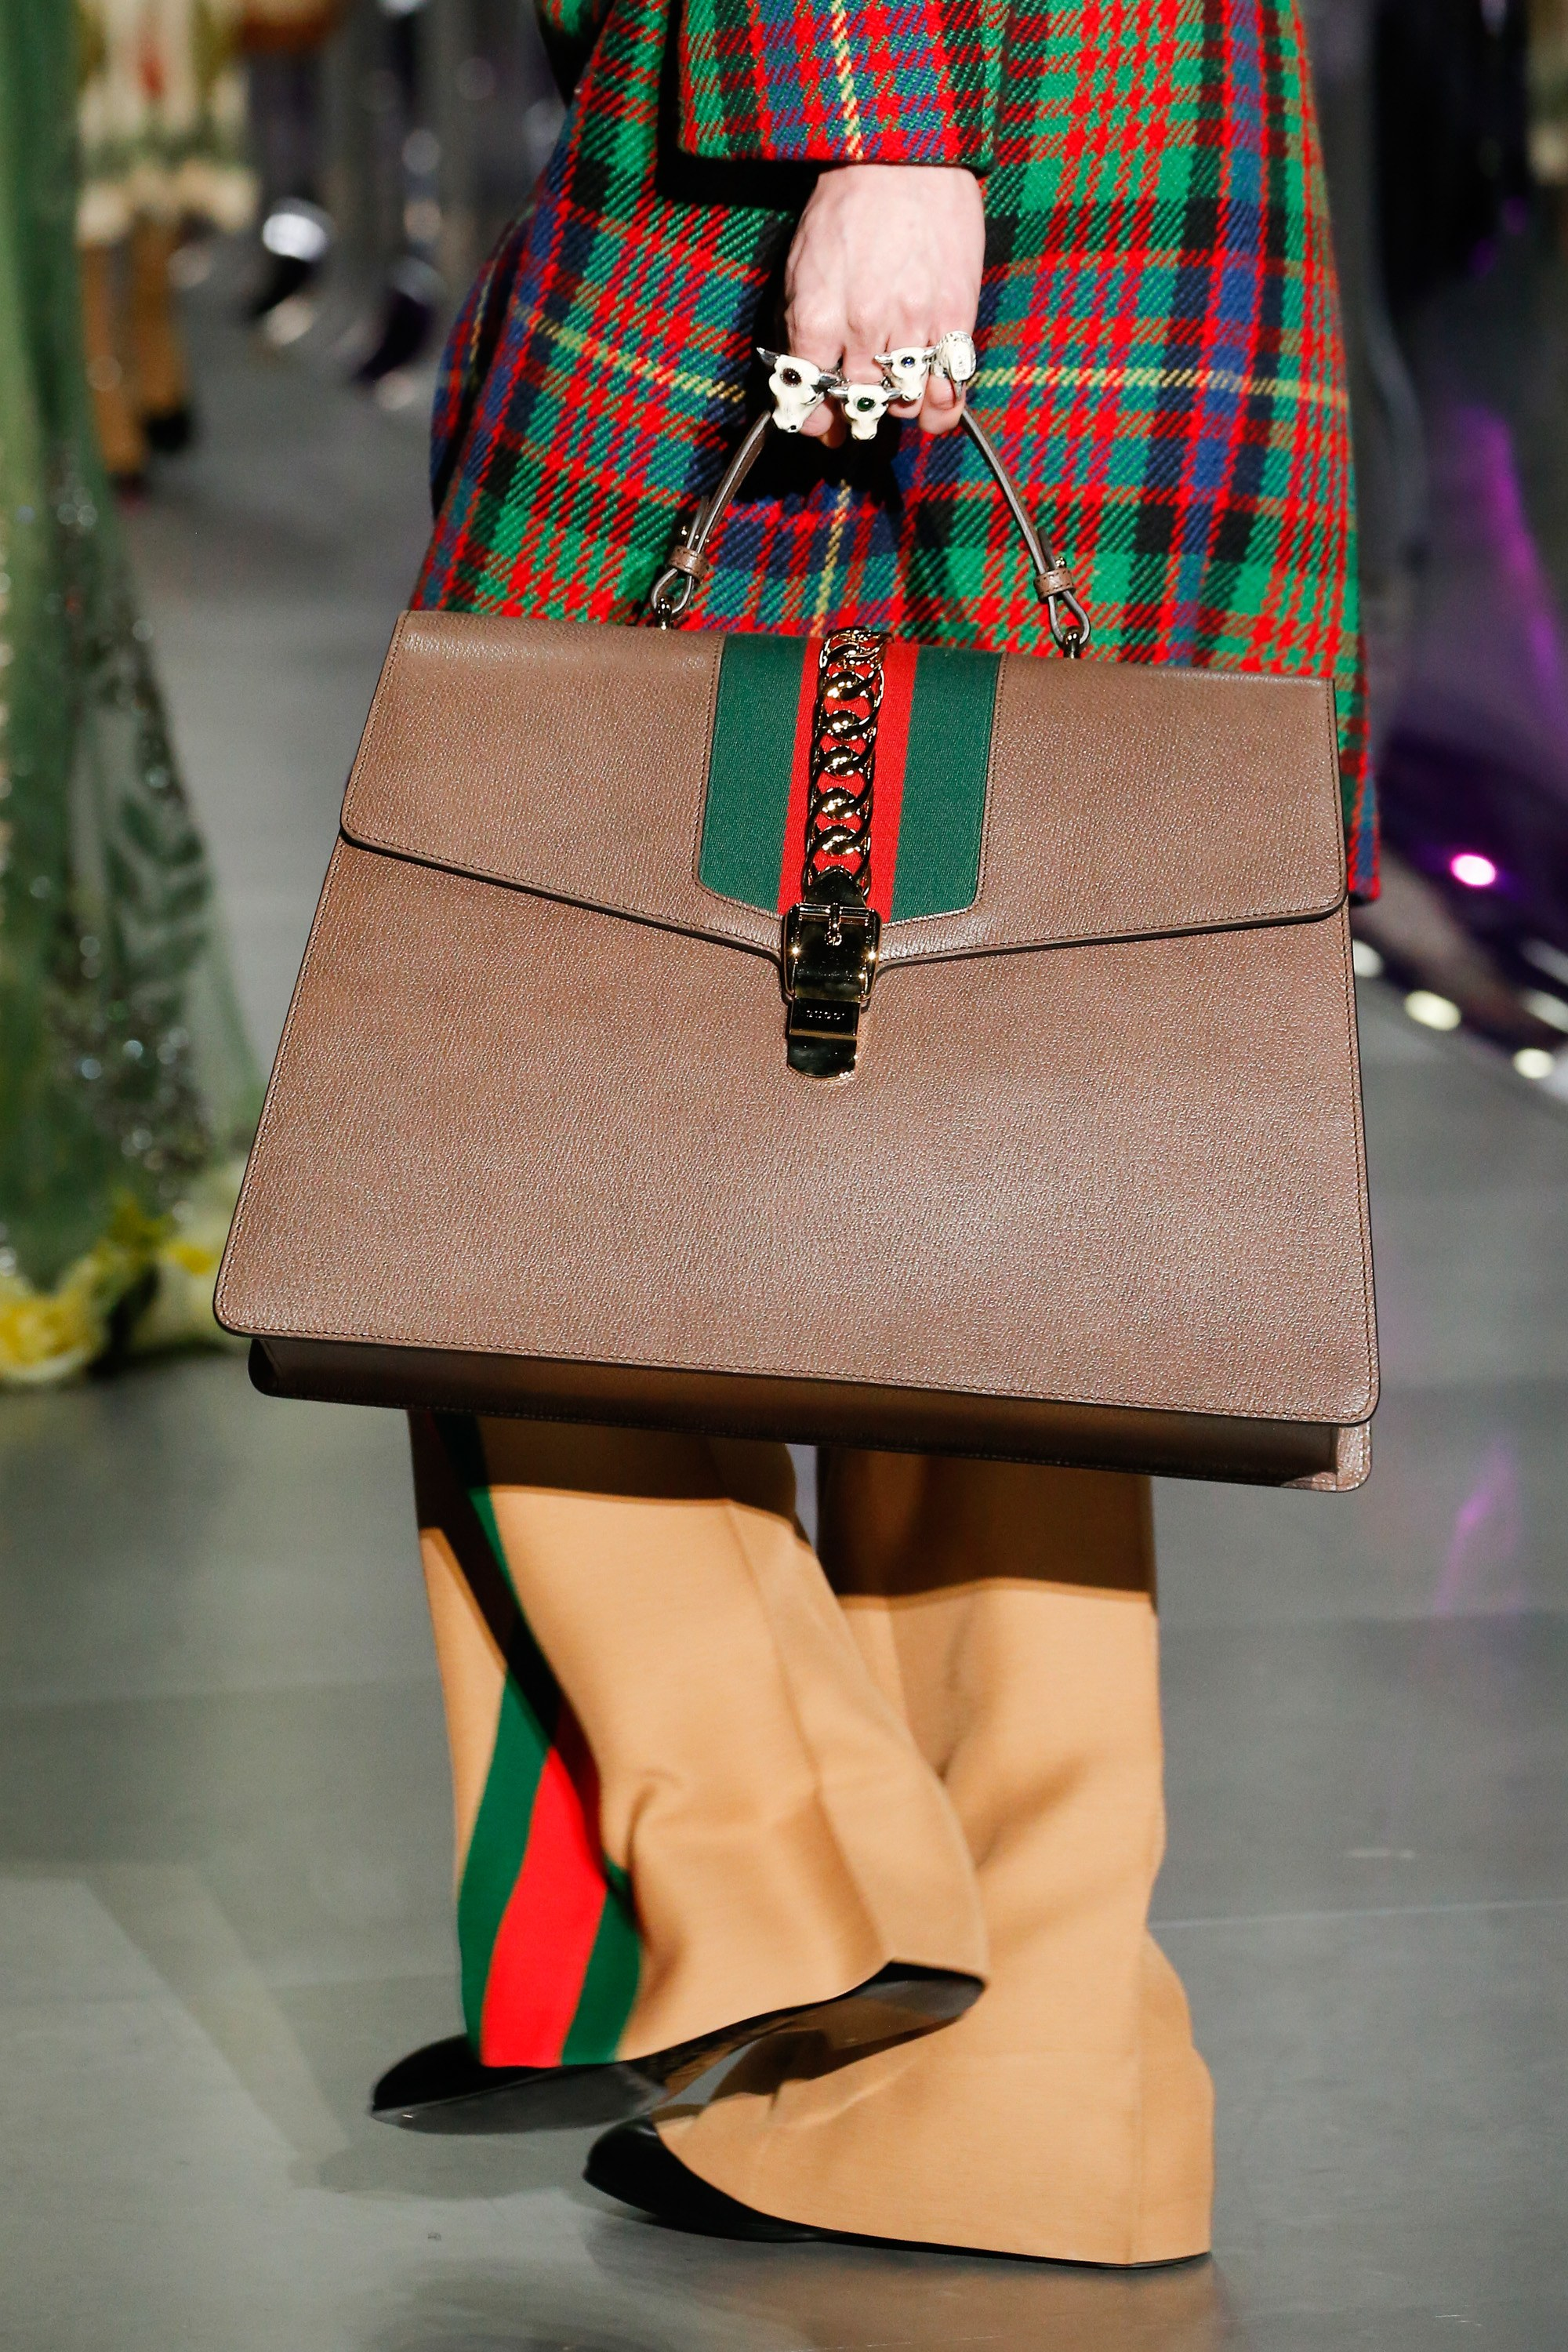 gucci bags fall 2017. gucci fall winter 2017 runway bag collection spotted fashion bags t